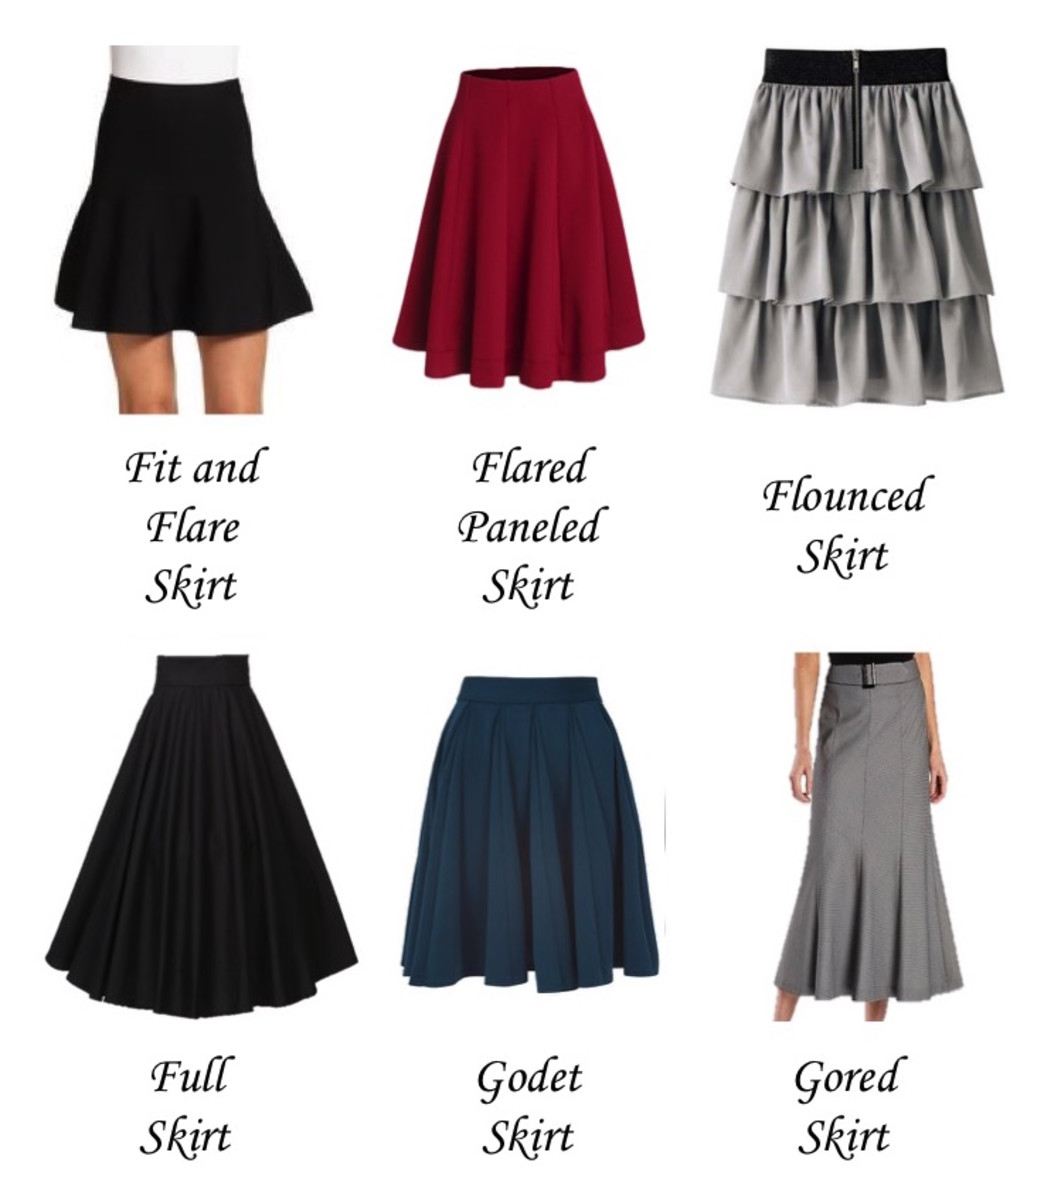 a-z-list-of-types-and-silhouettes-of-skirts-in-fashion